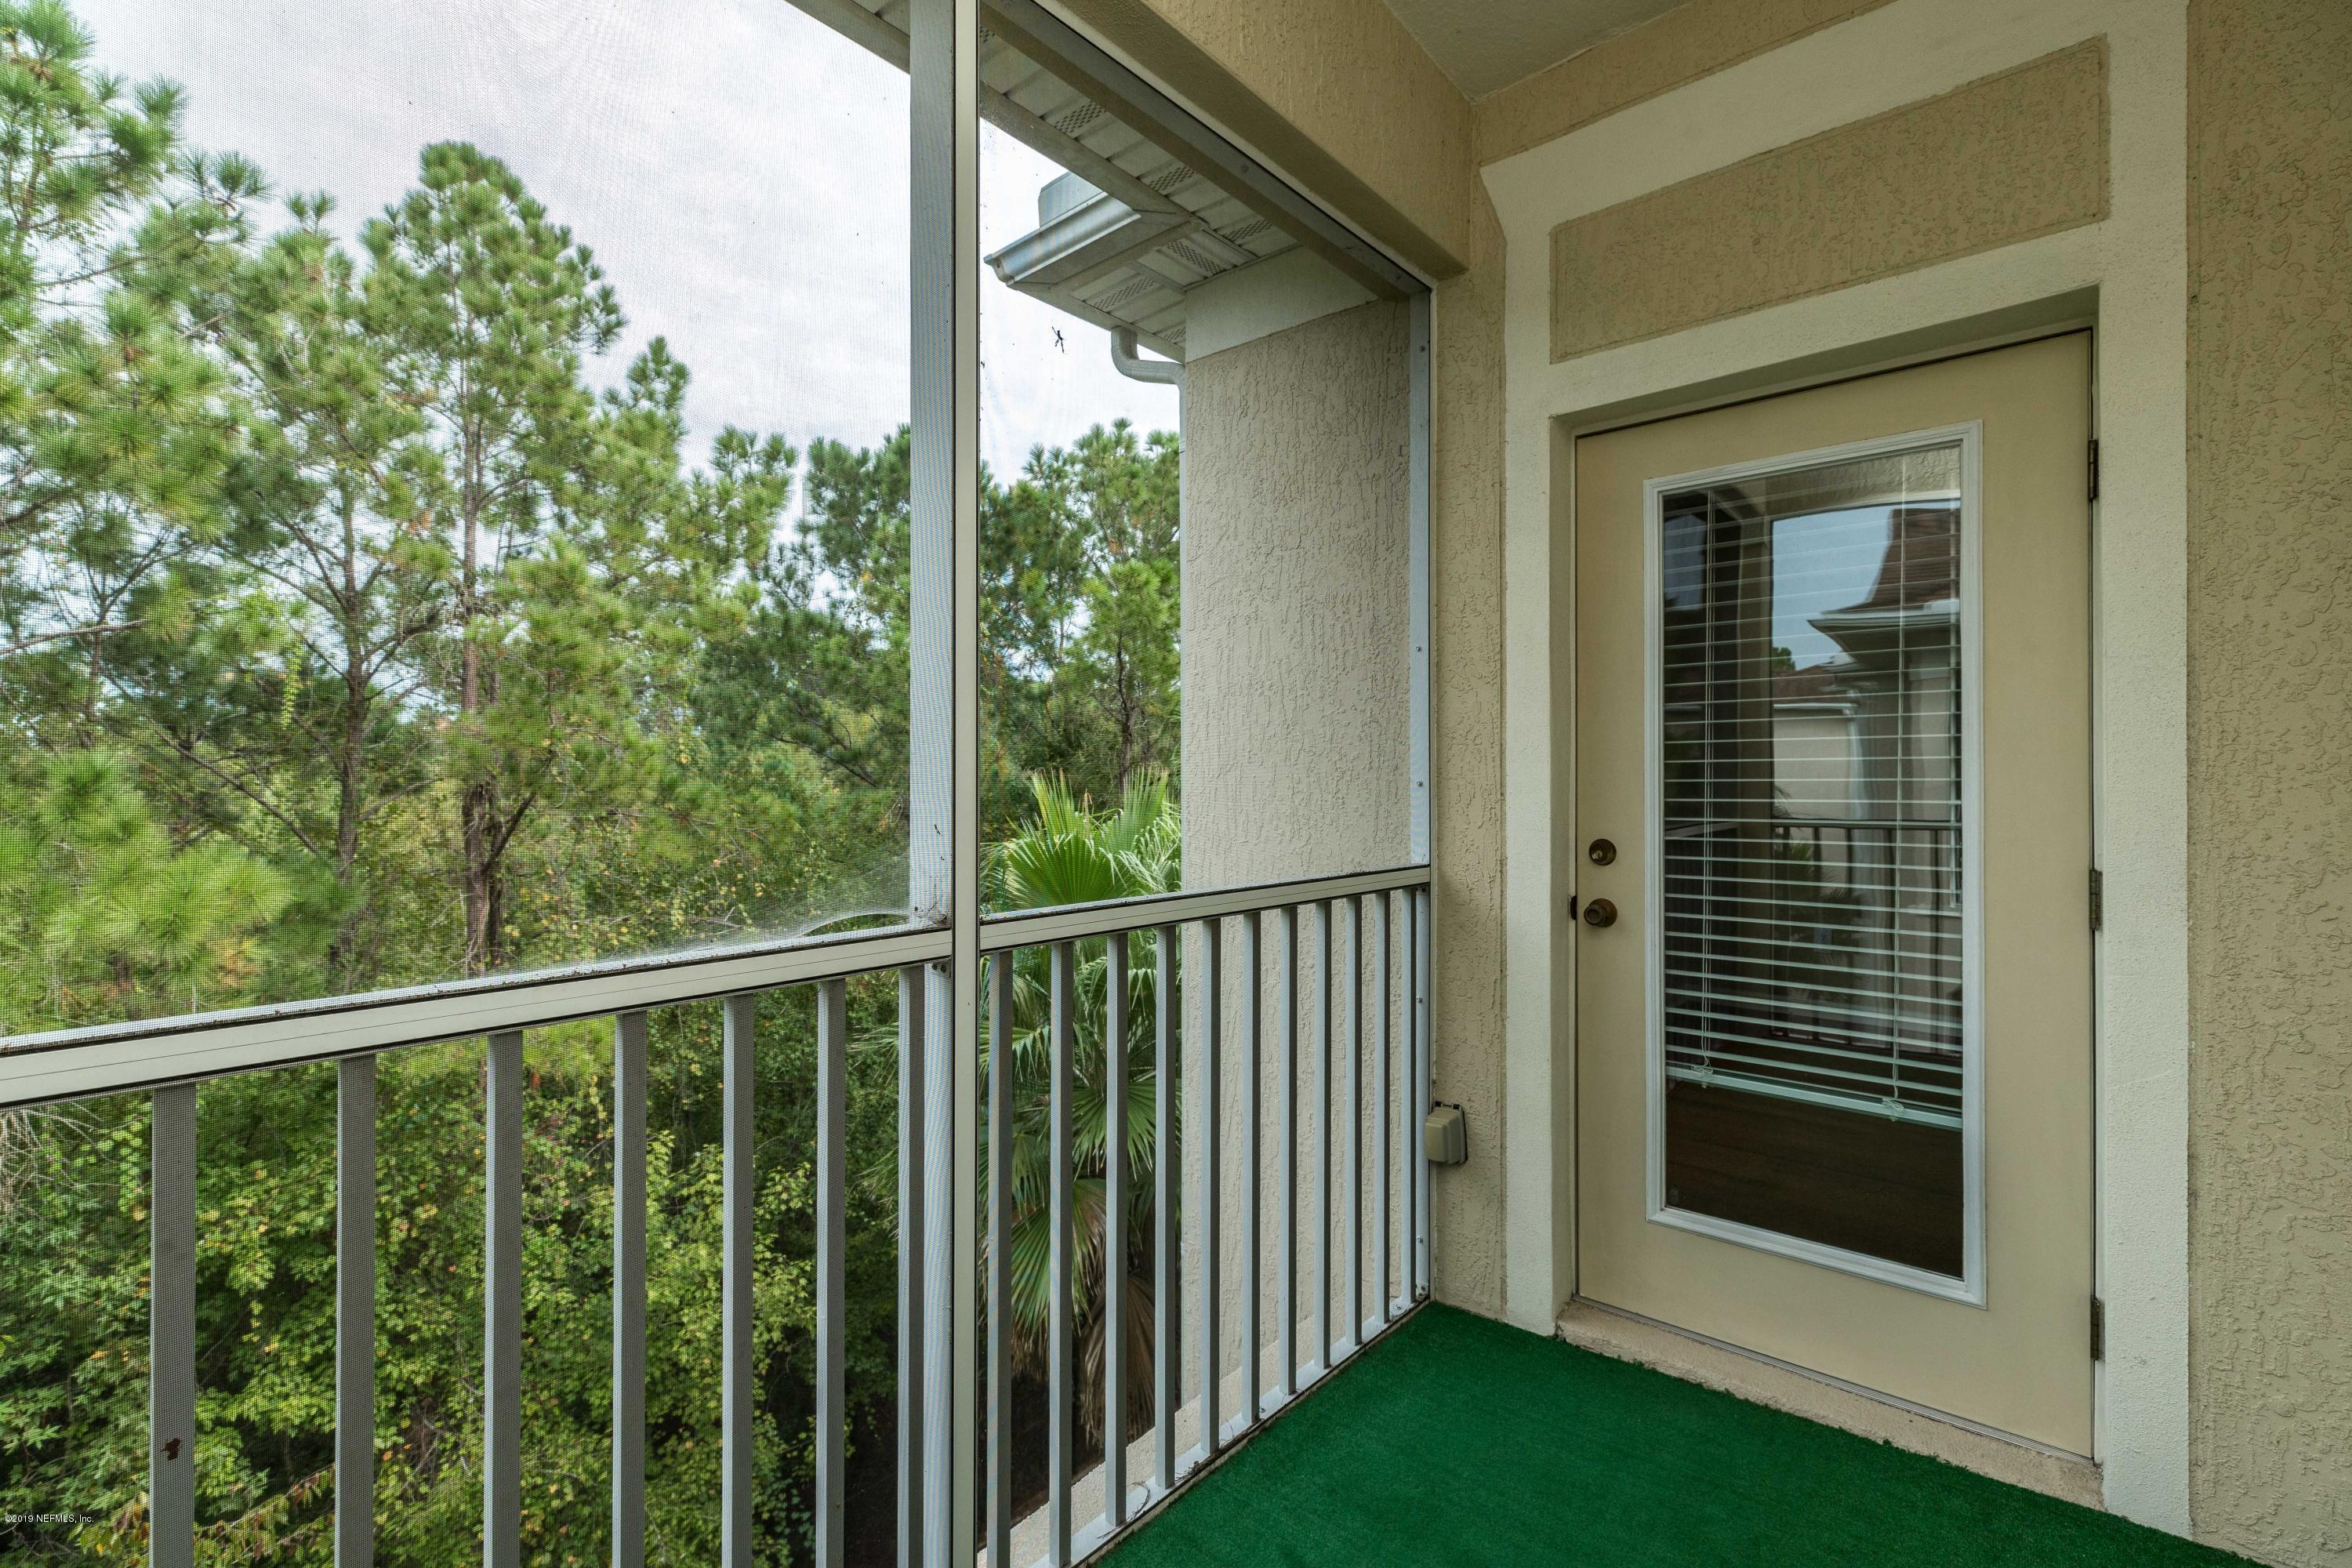 7801 POINT MEADOWS- JACKSONVILLE- FLORIDA 32256, 3 Bedrooms Bedrooms, ,2 BathroomsBathrooms,Condo,For sale,POINT MEADOWS,1022779